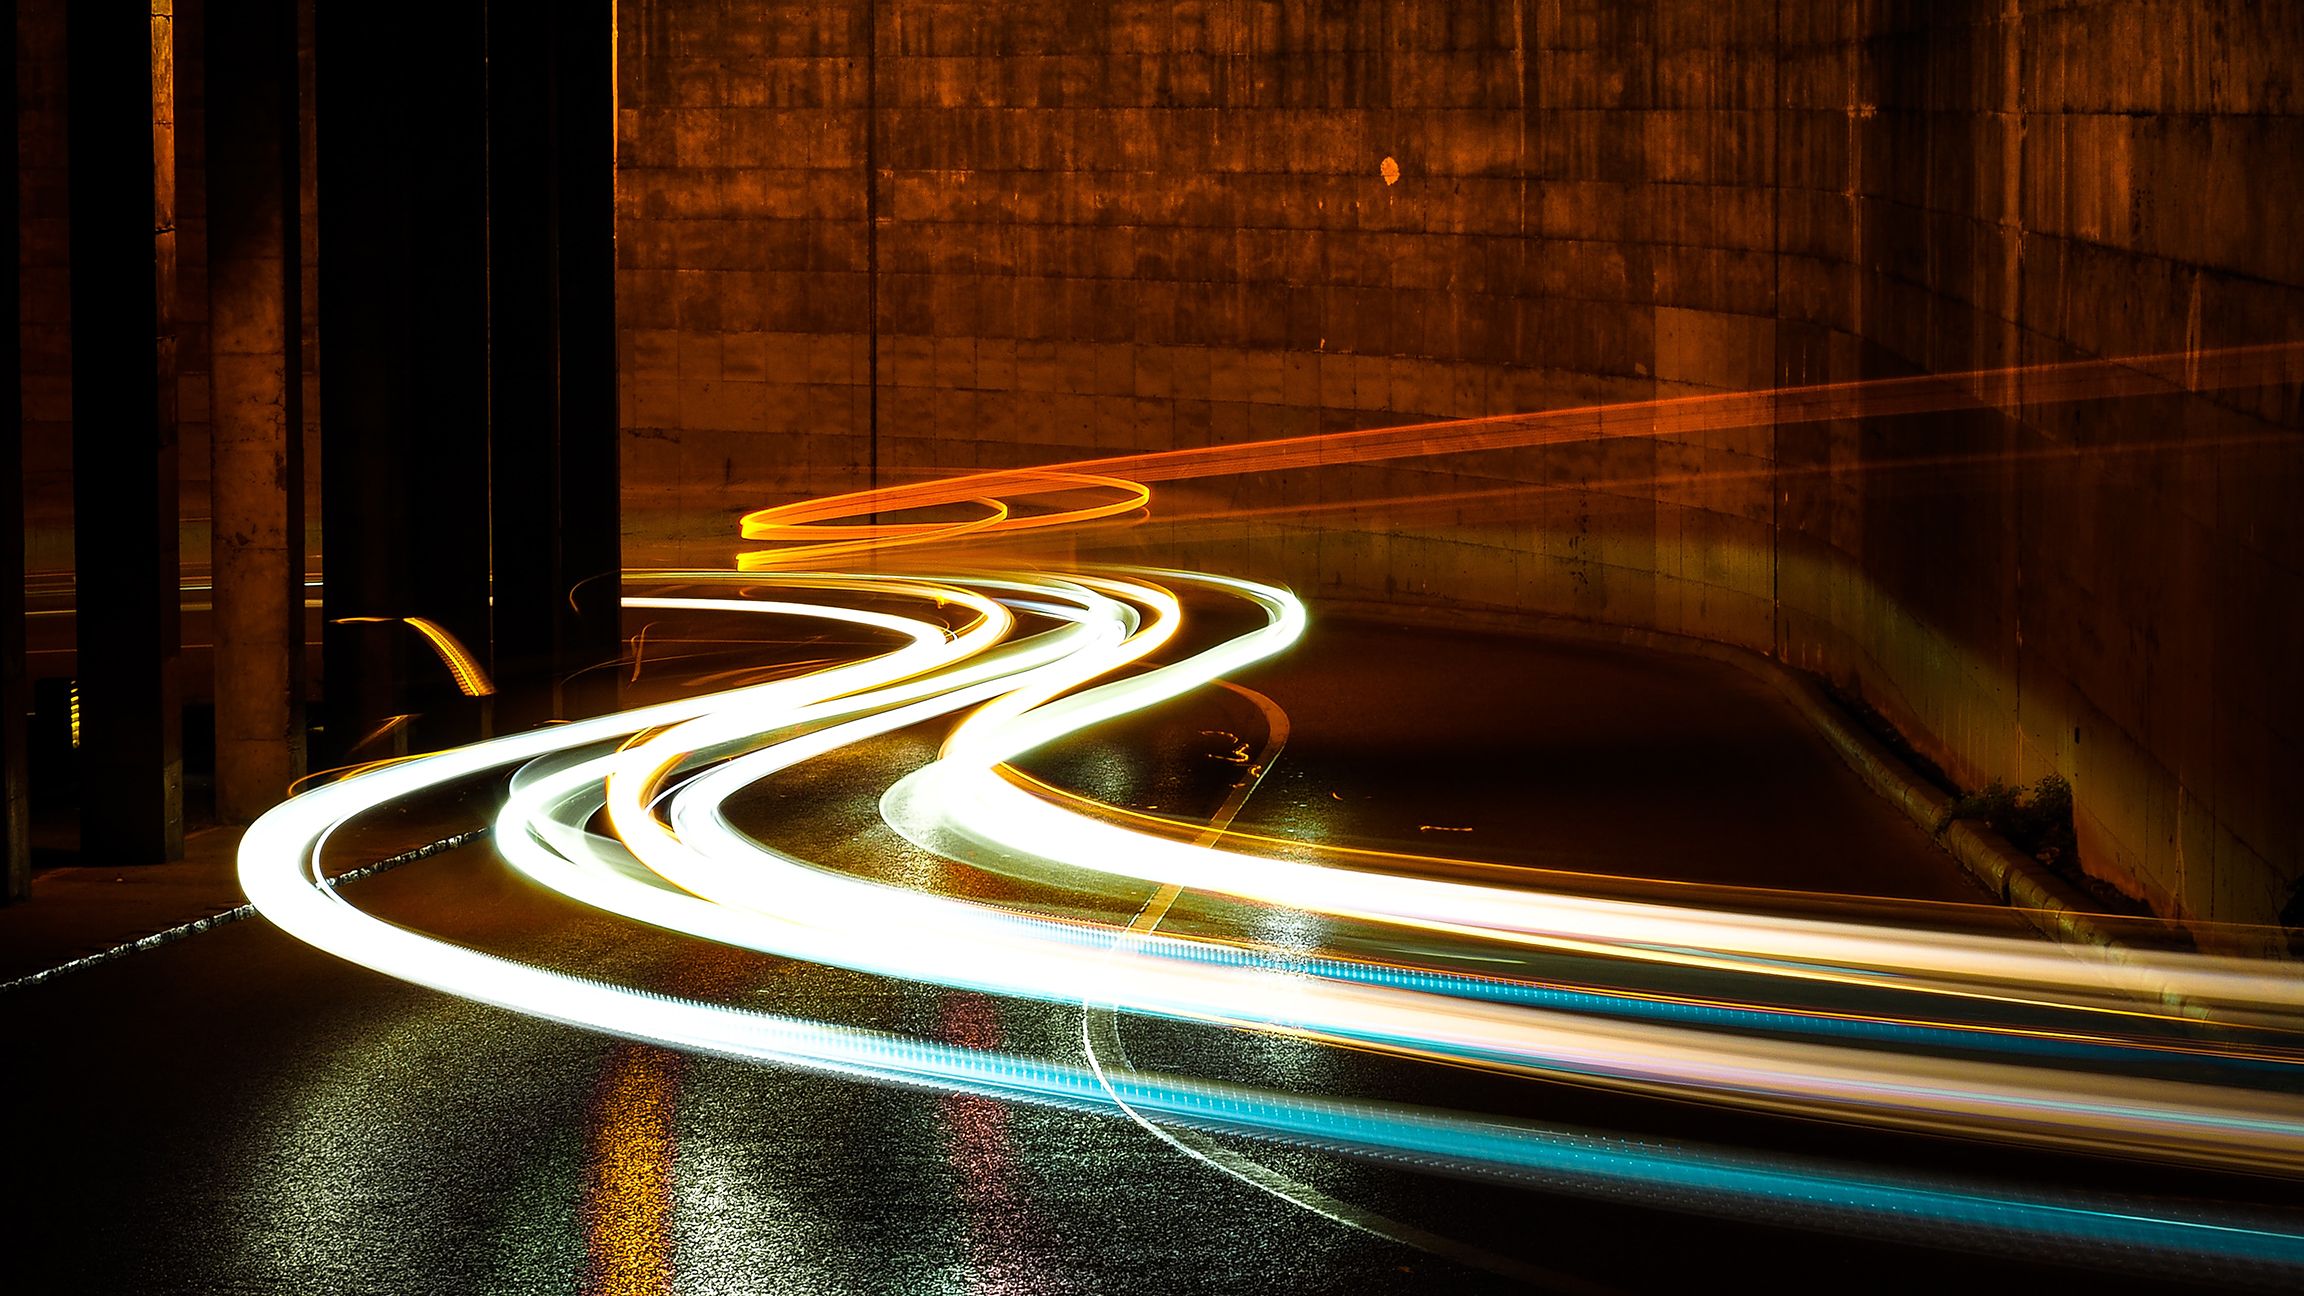 800G technology: Does double capacity mean twice the performance?